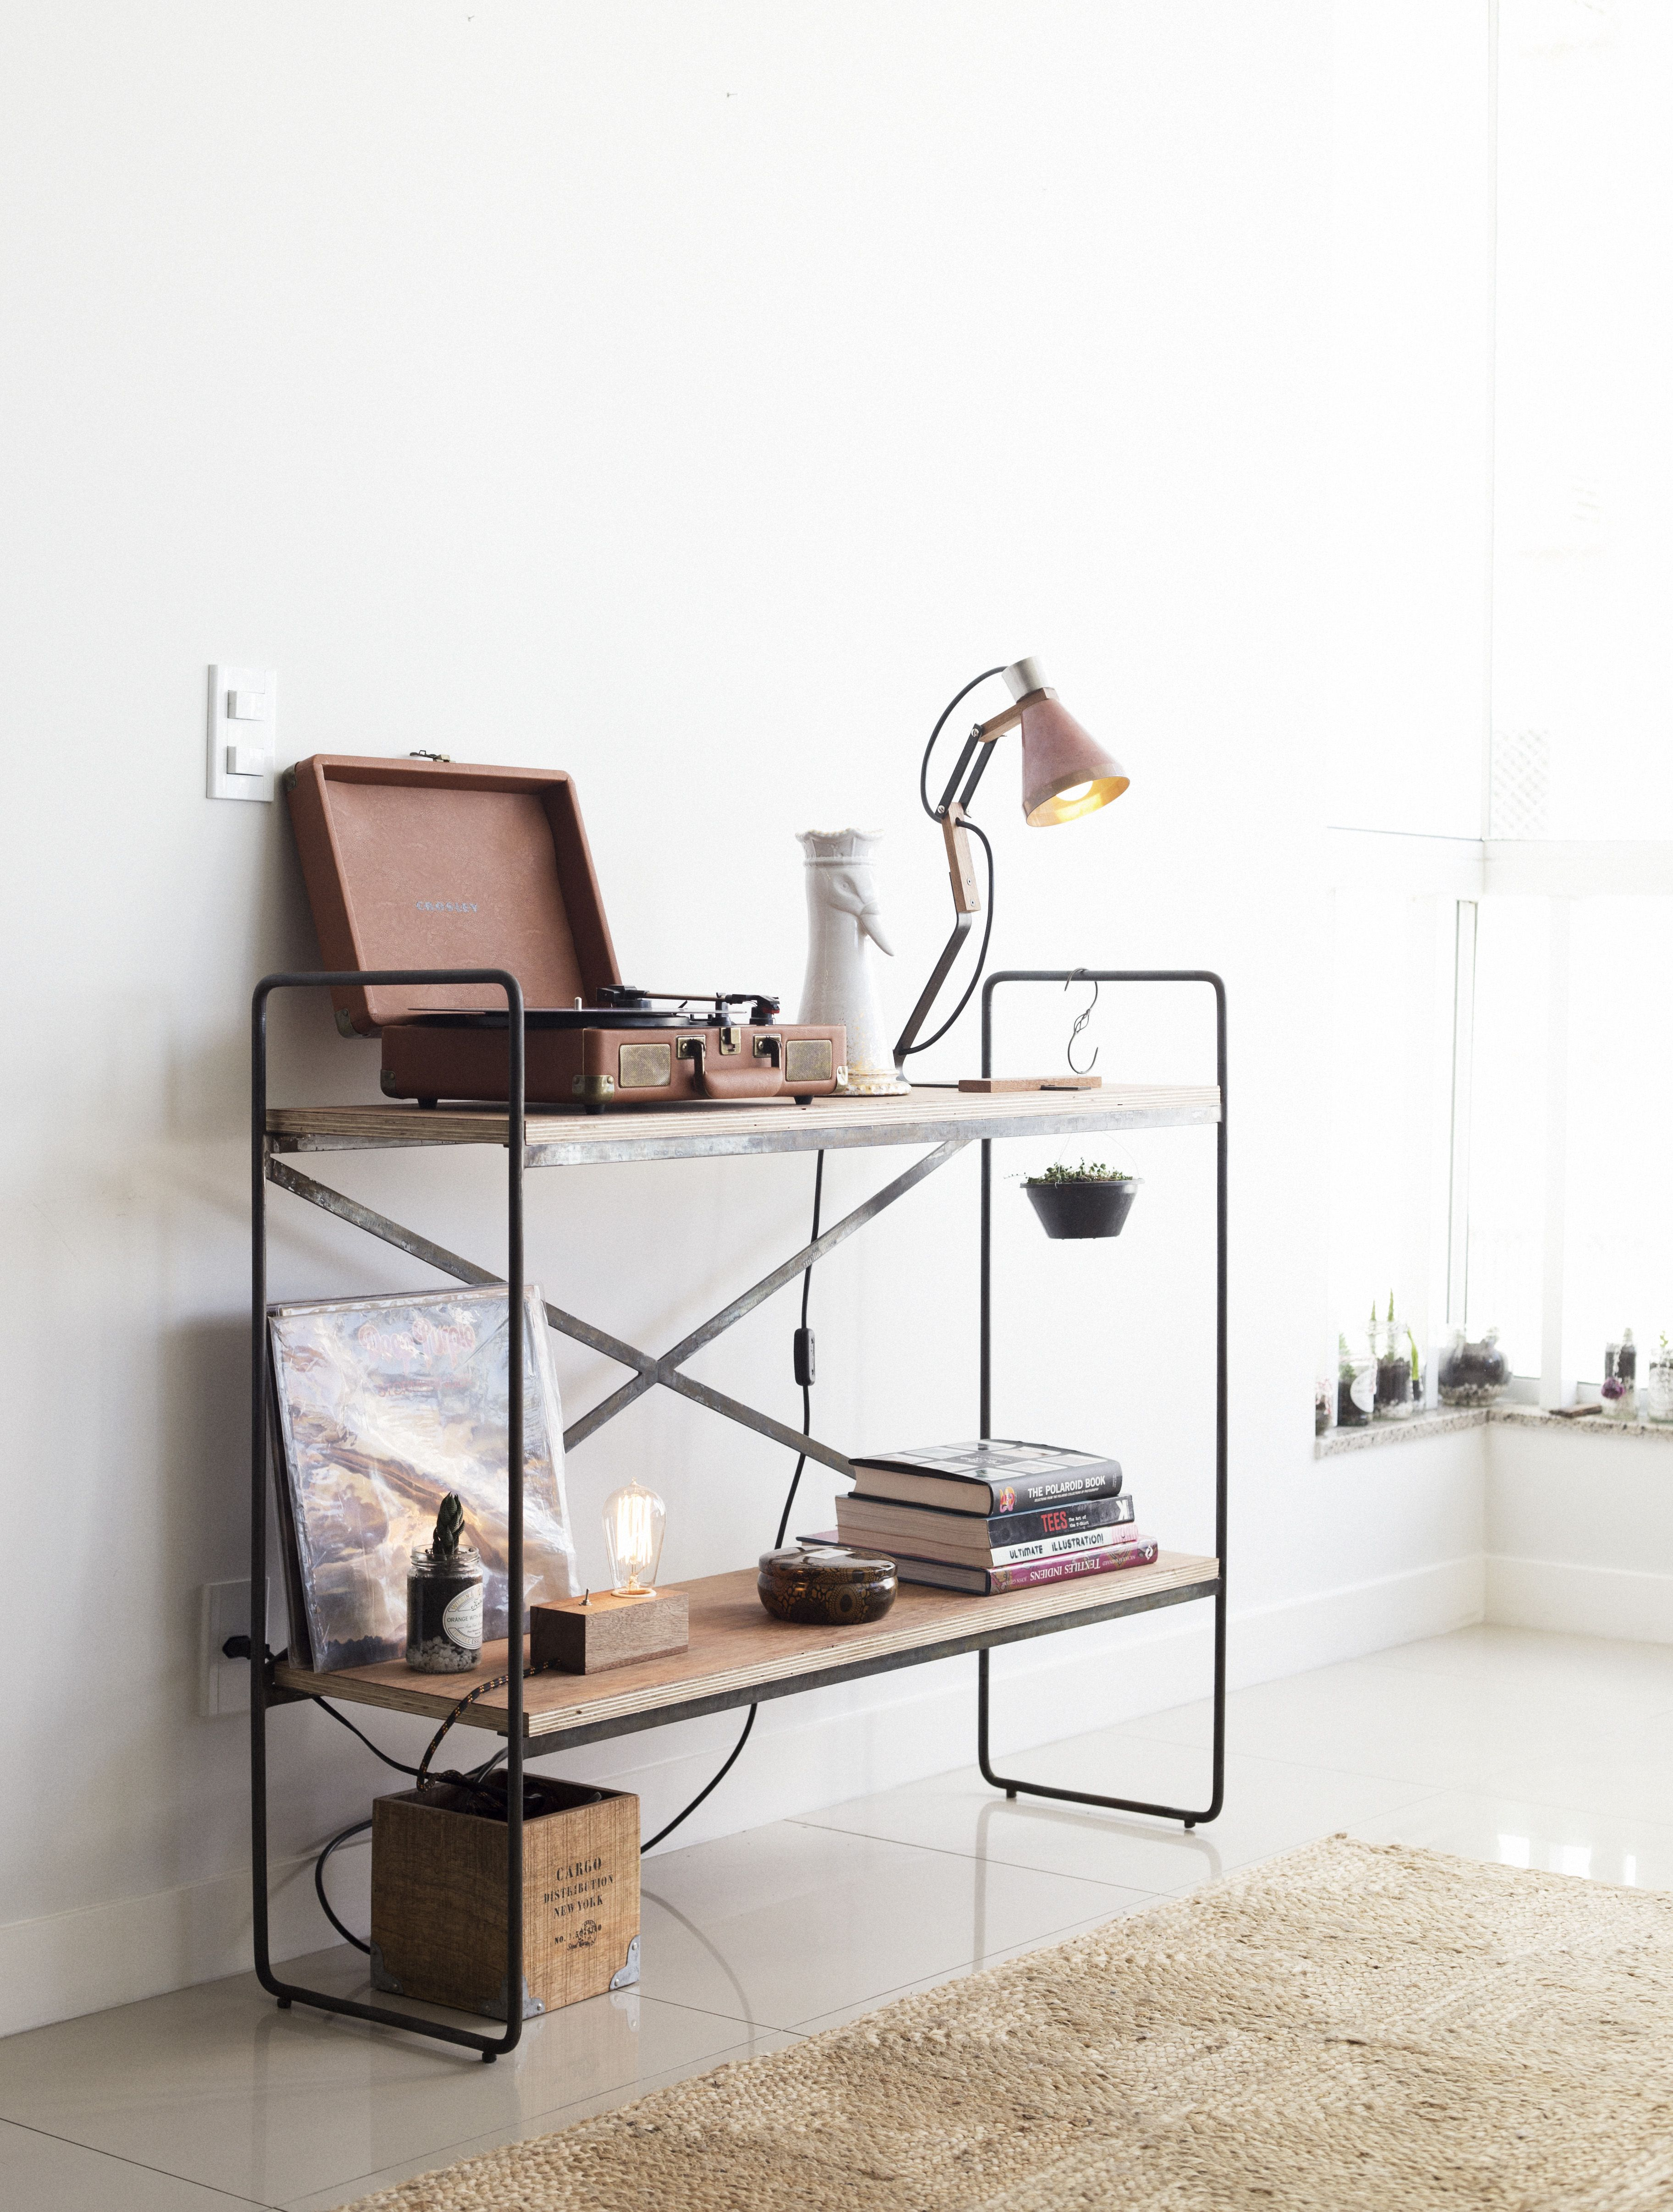 raw steel and plywood shelving unit by t44creative.com